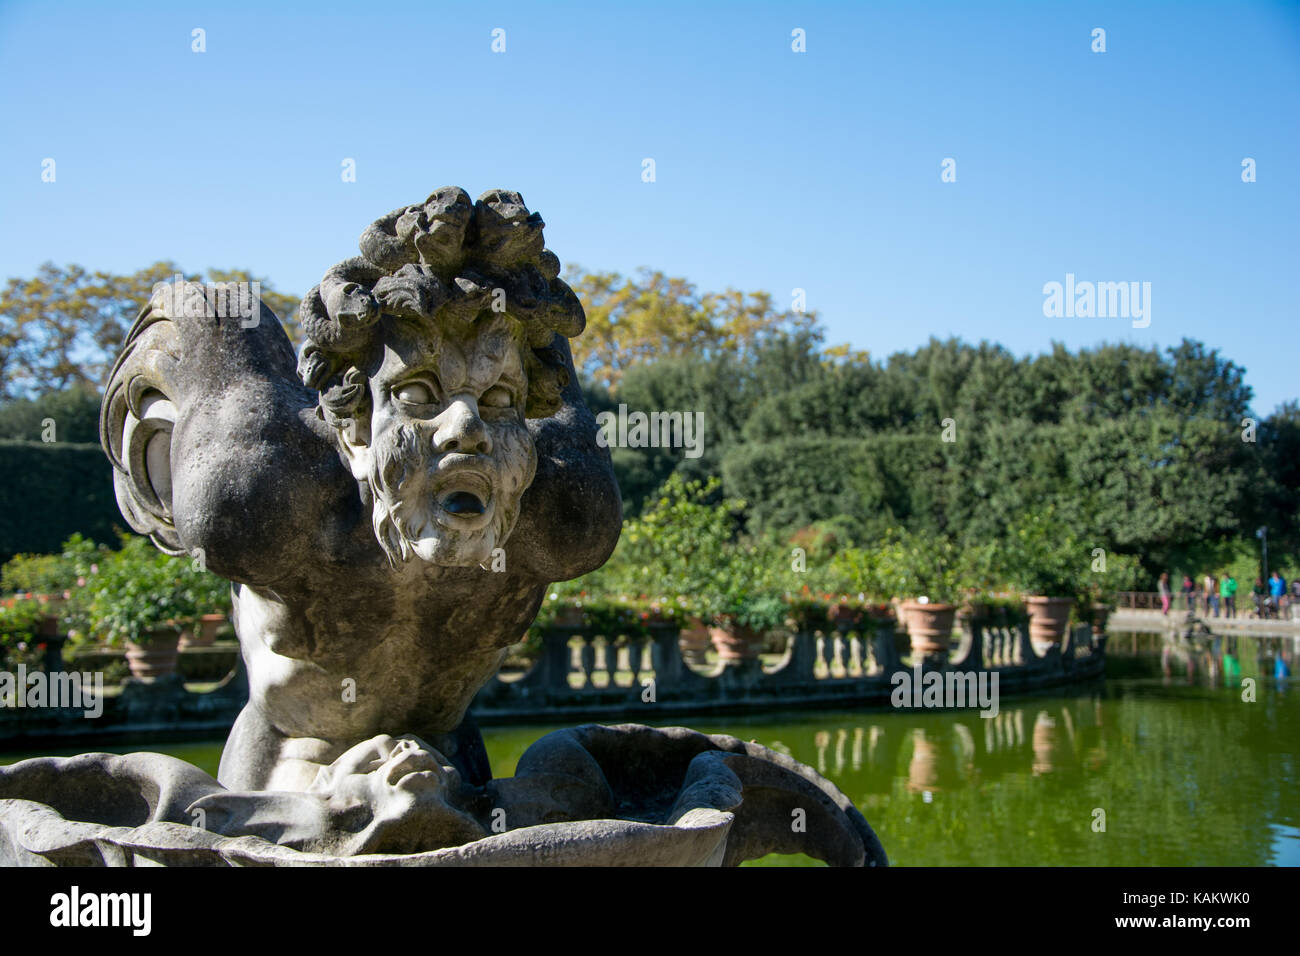 One of the various statues around the Isoletto athe Boboli Gardens in Florence, Italy - Stock Image